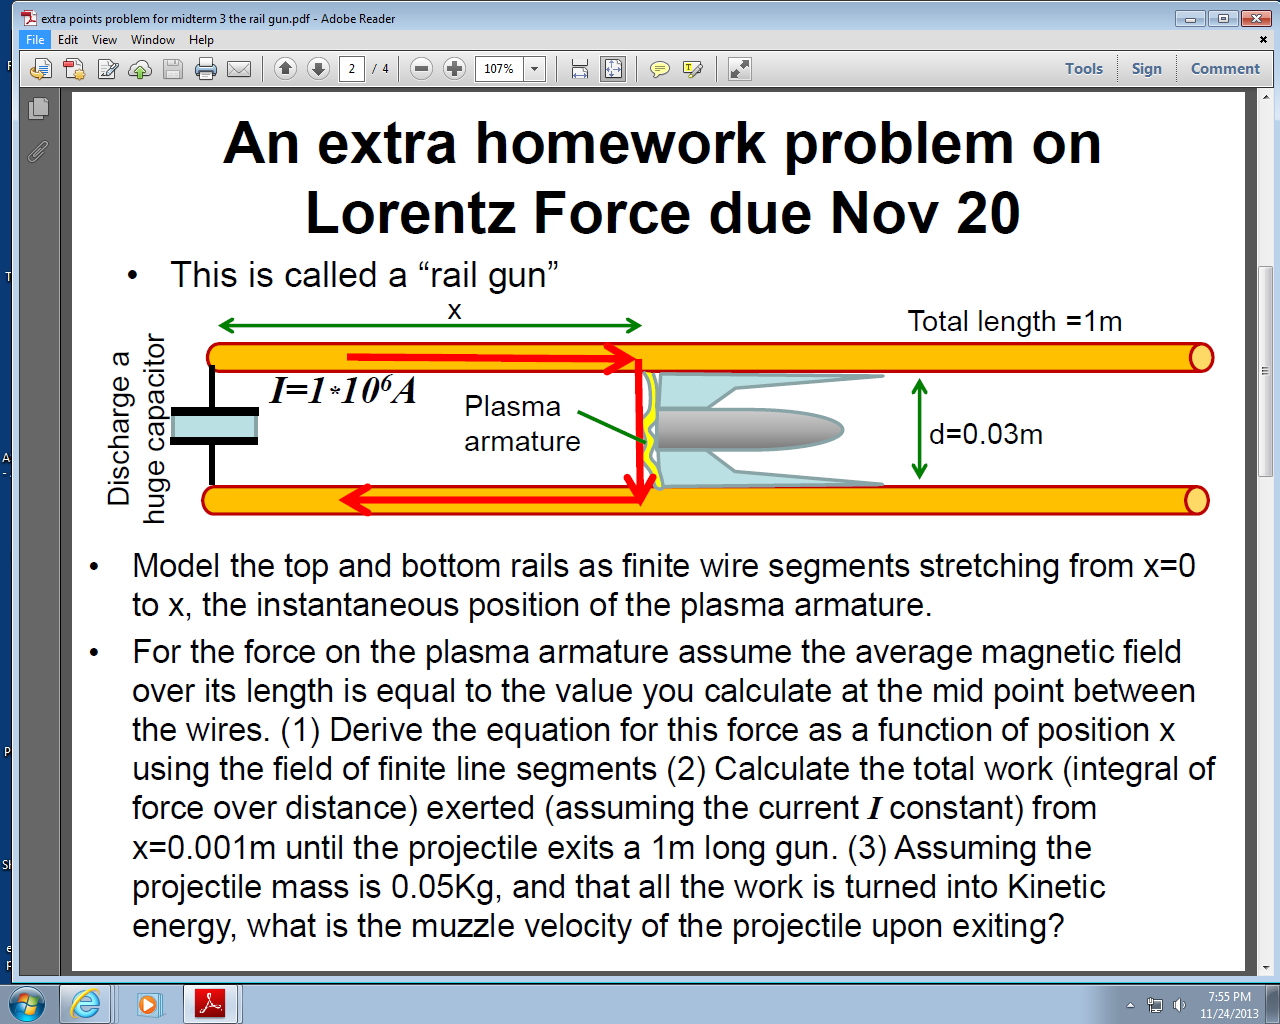 An extra homework problem on Lorentz Force due Nov